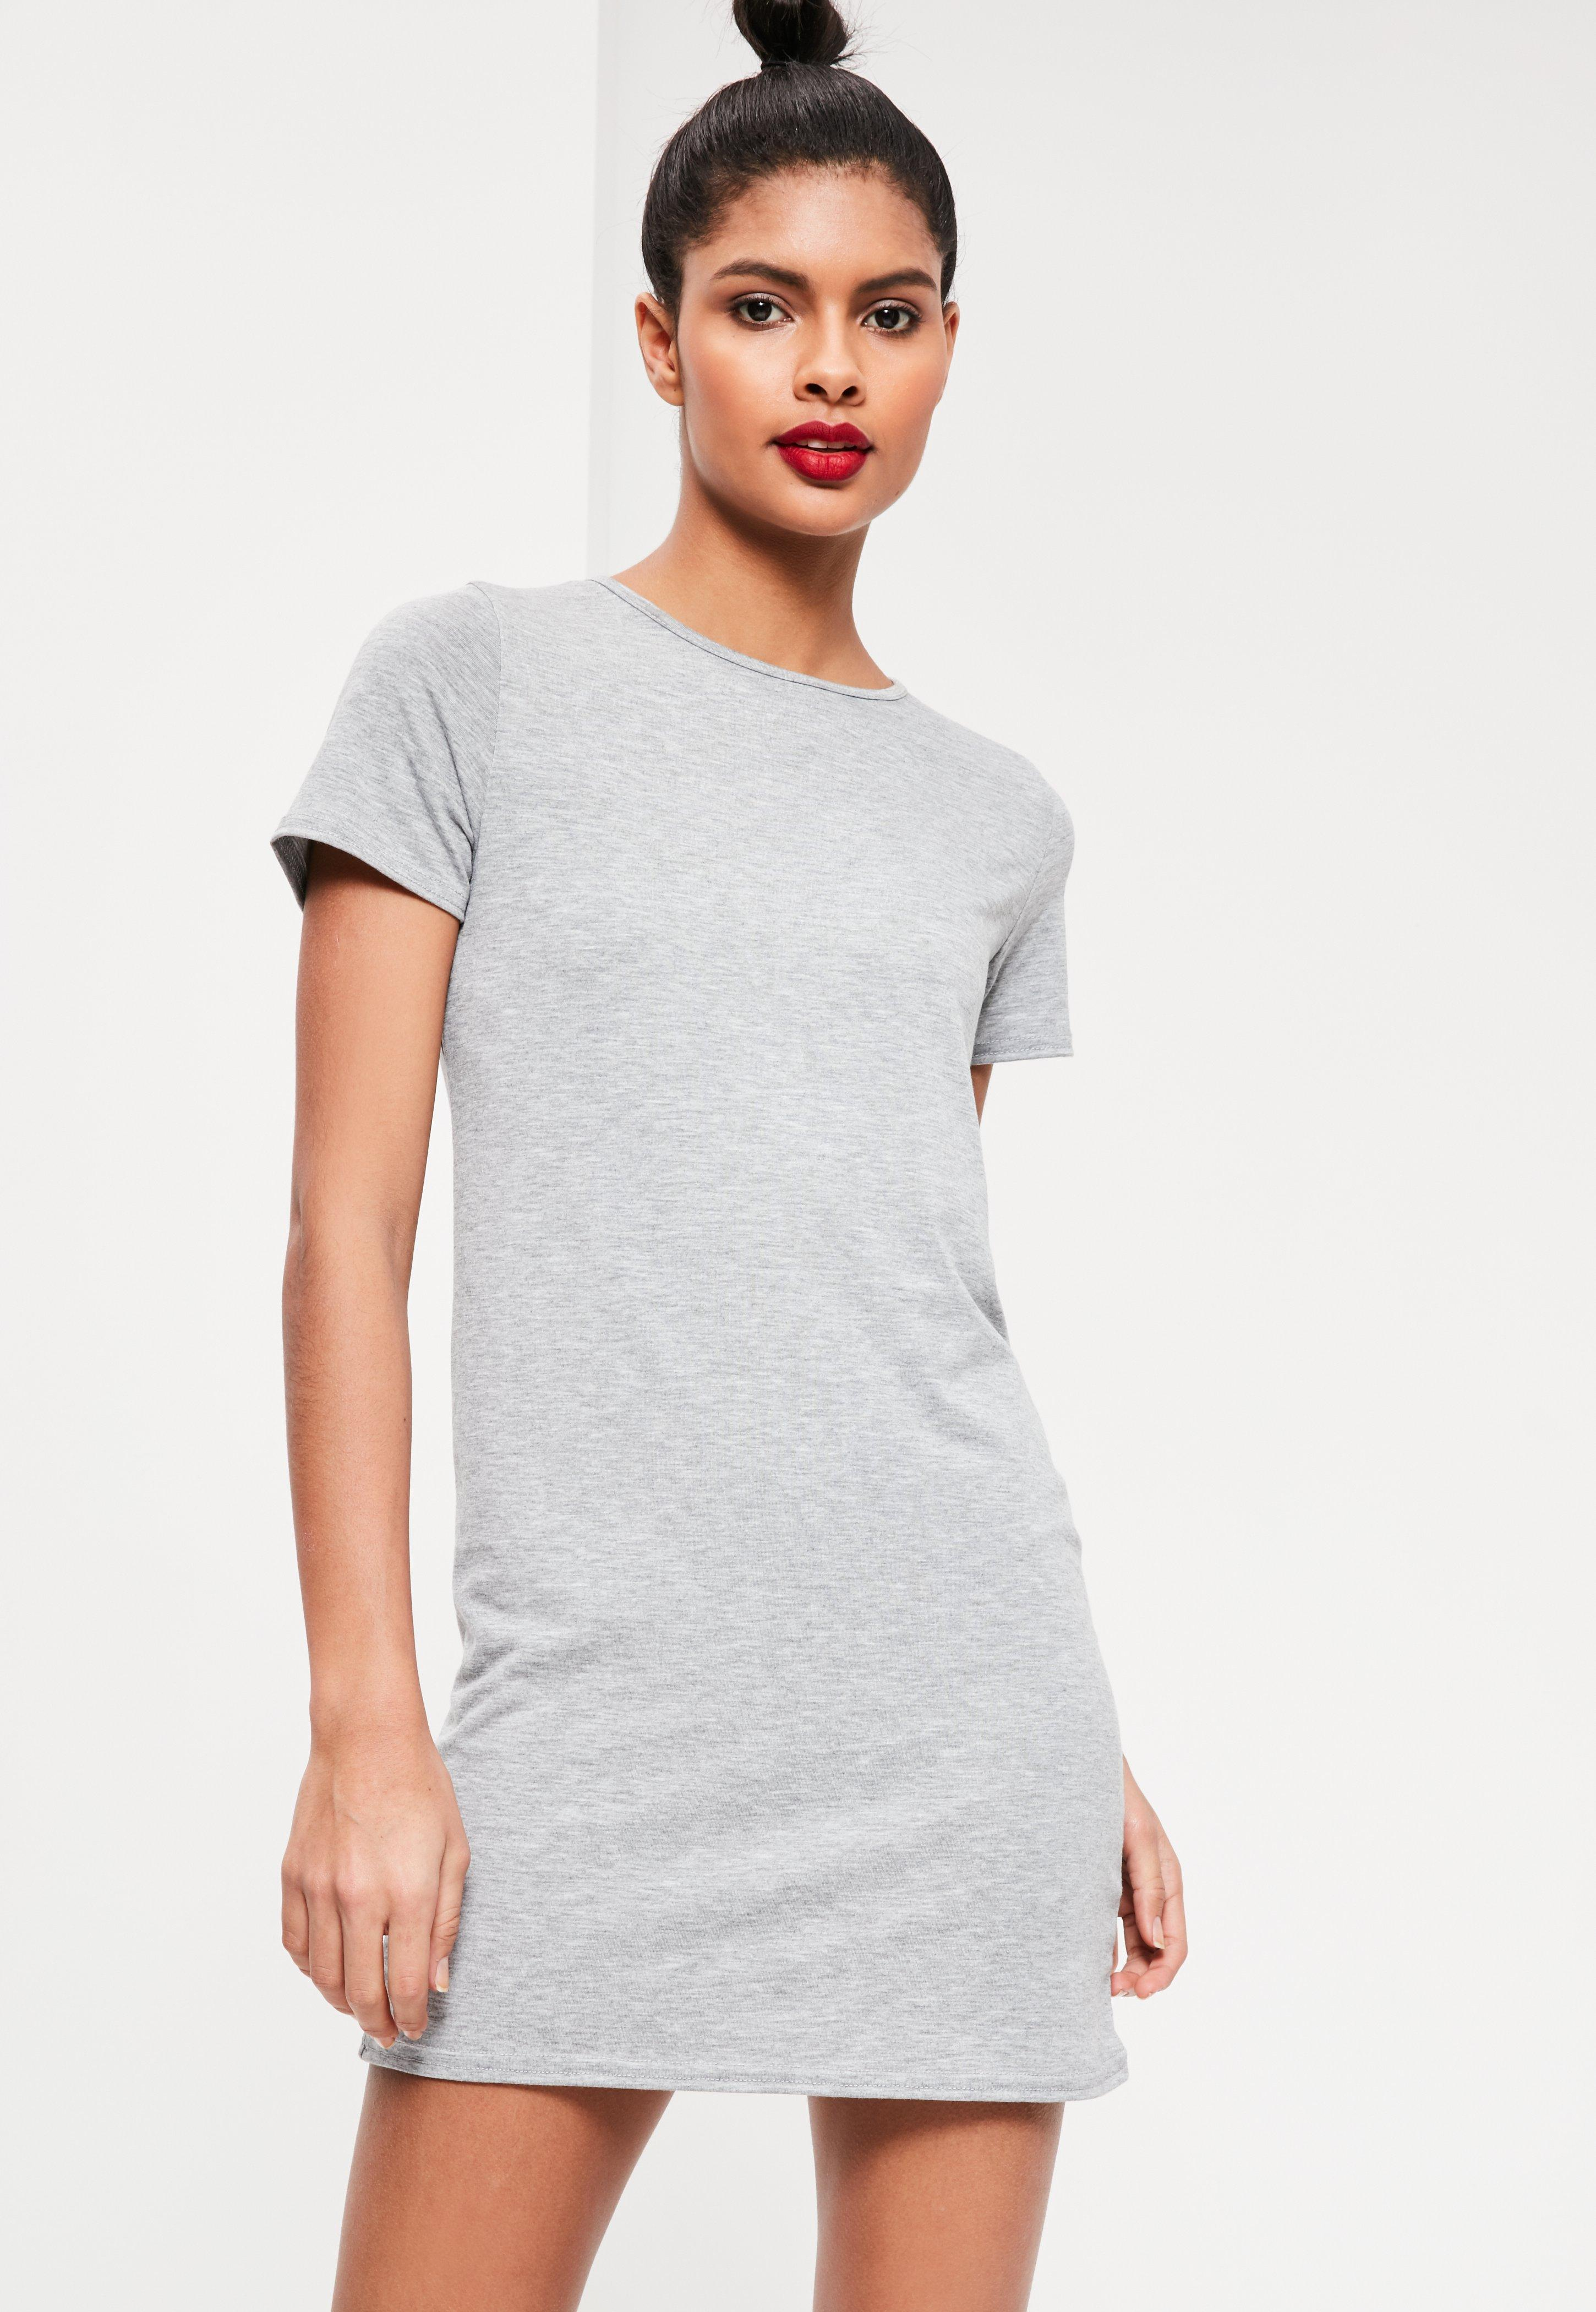 DRESSES - Short dresses My T-Shirt jIkhFlYX